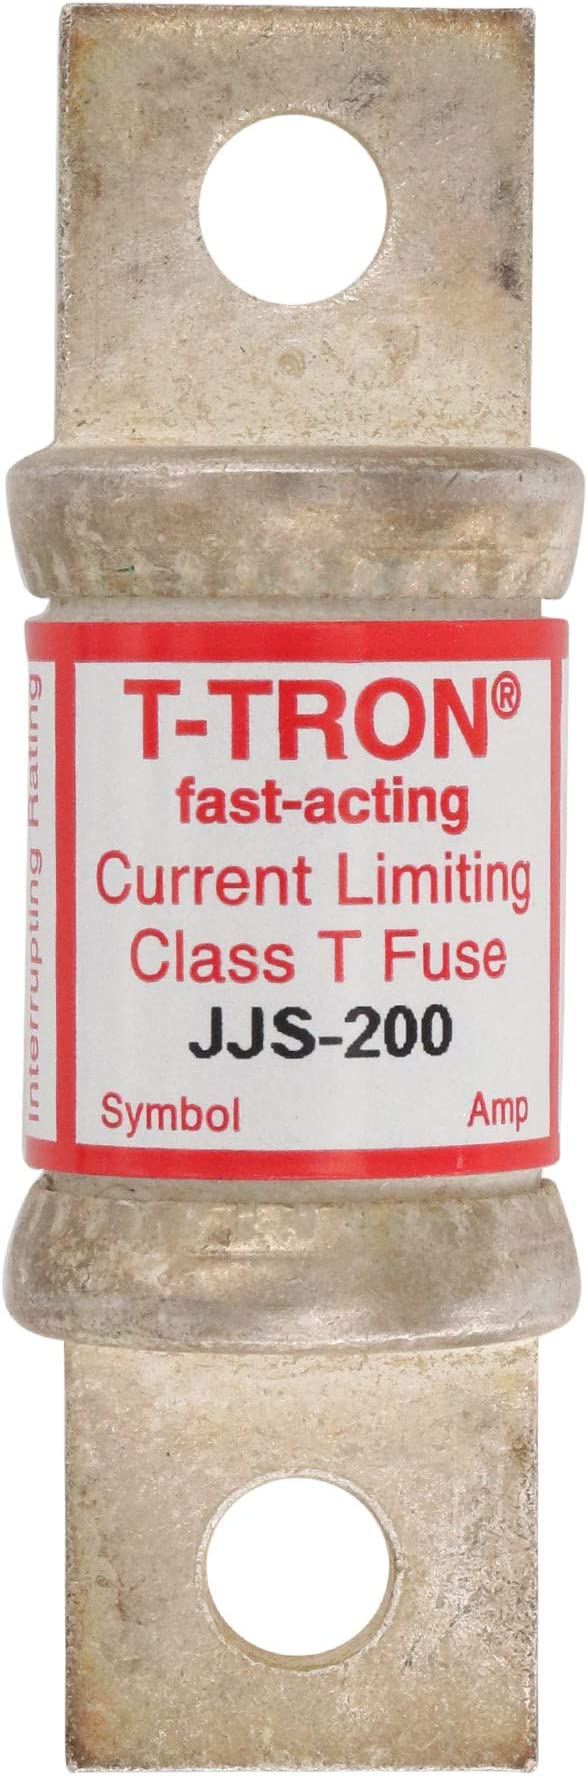 Class-T Fast Acting 200A Cooper Bussmann JJS-200 Bolt-On Fuse 600V